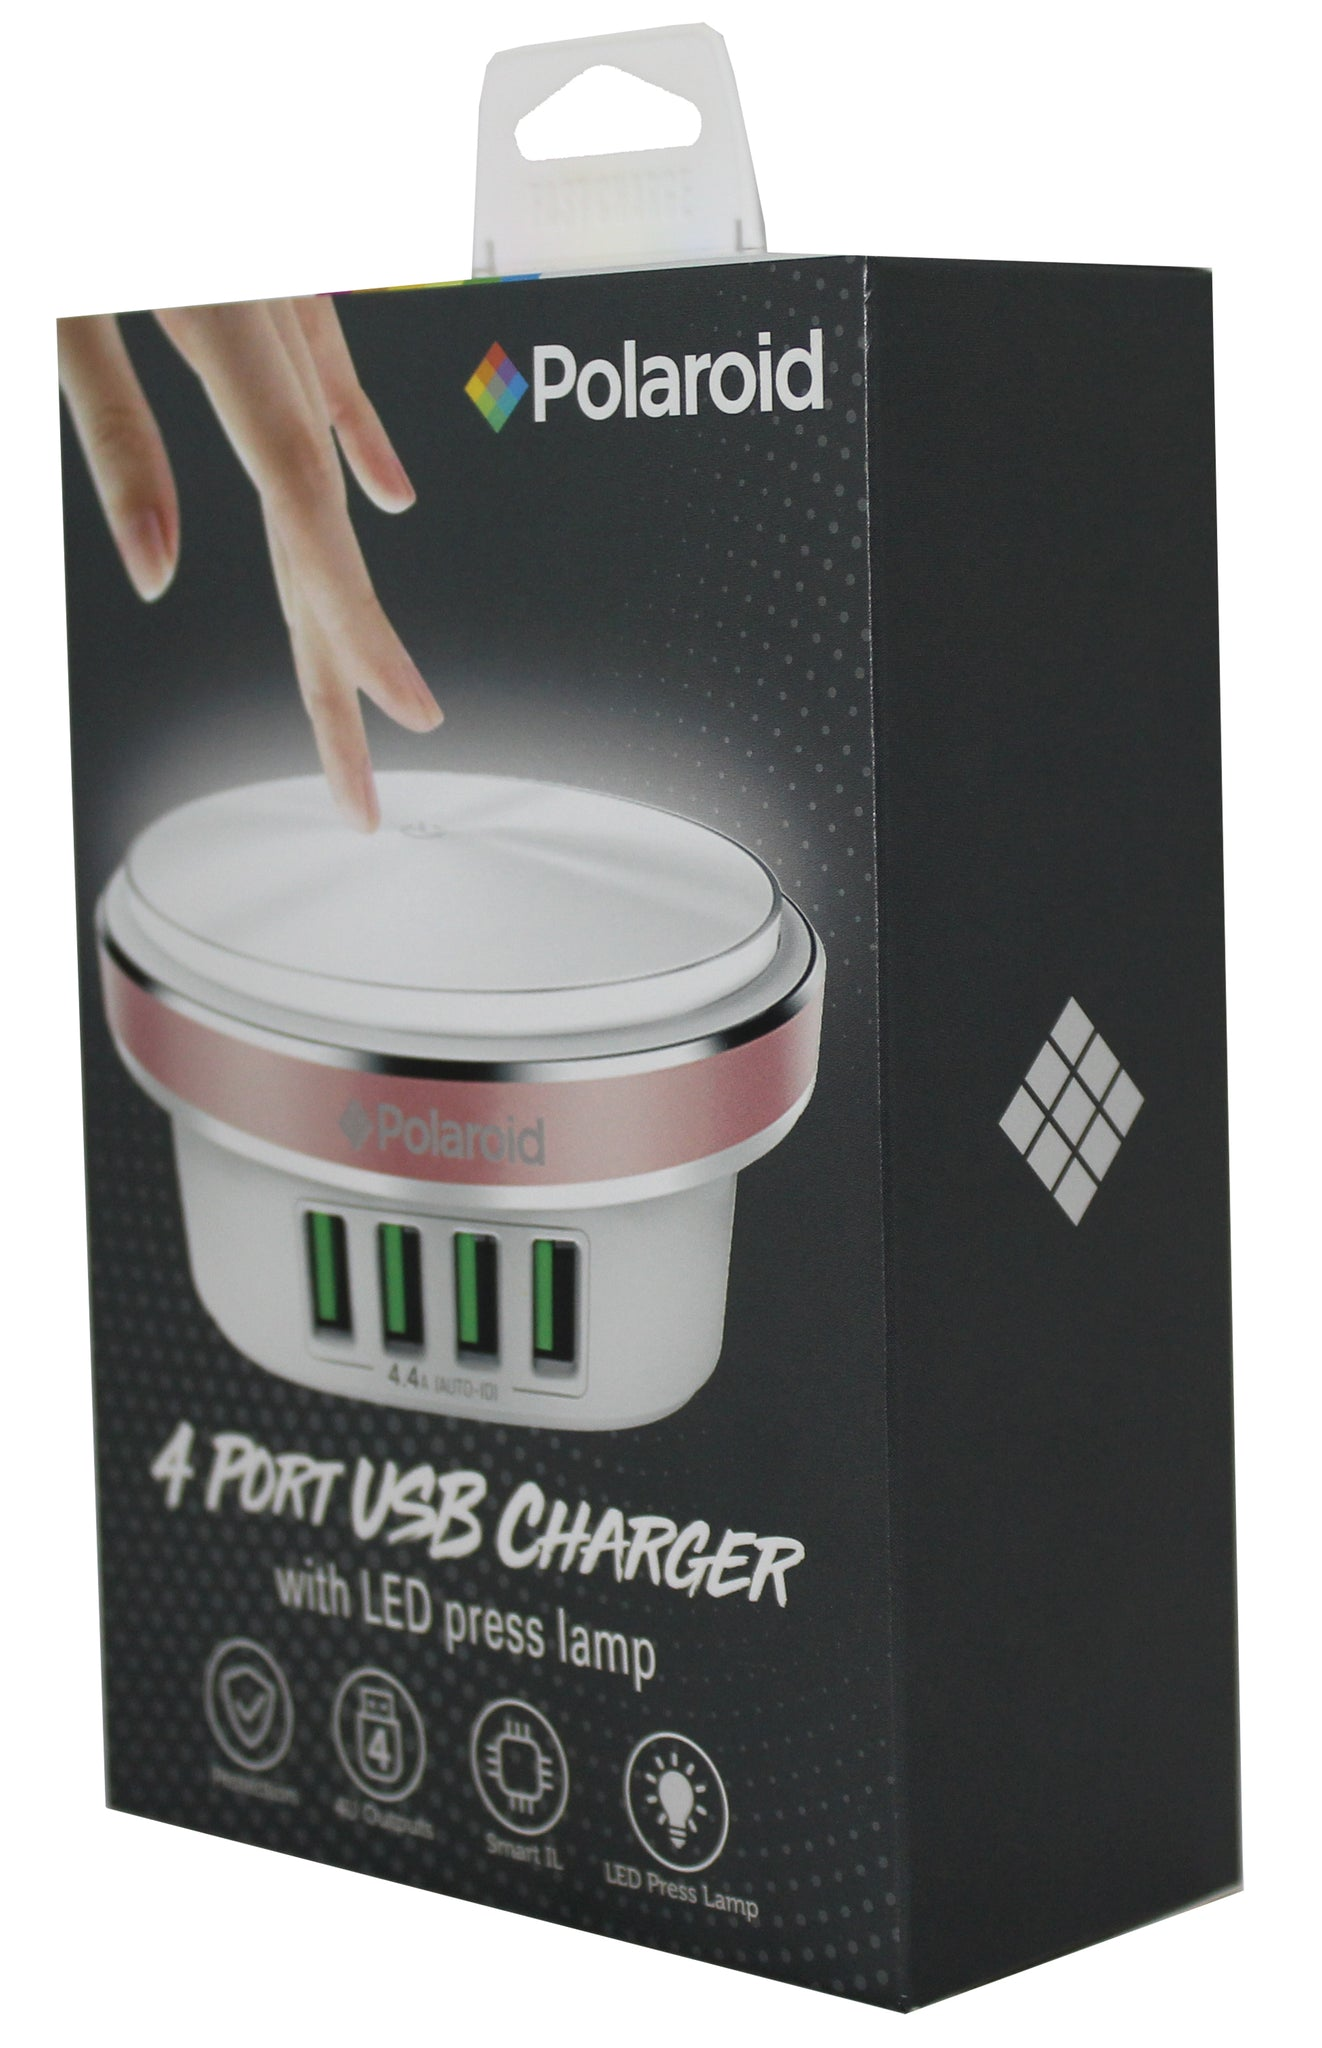 Polaroid LED Press Lamp With 4 Port USB